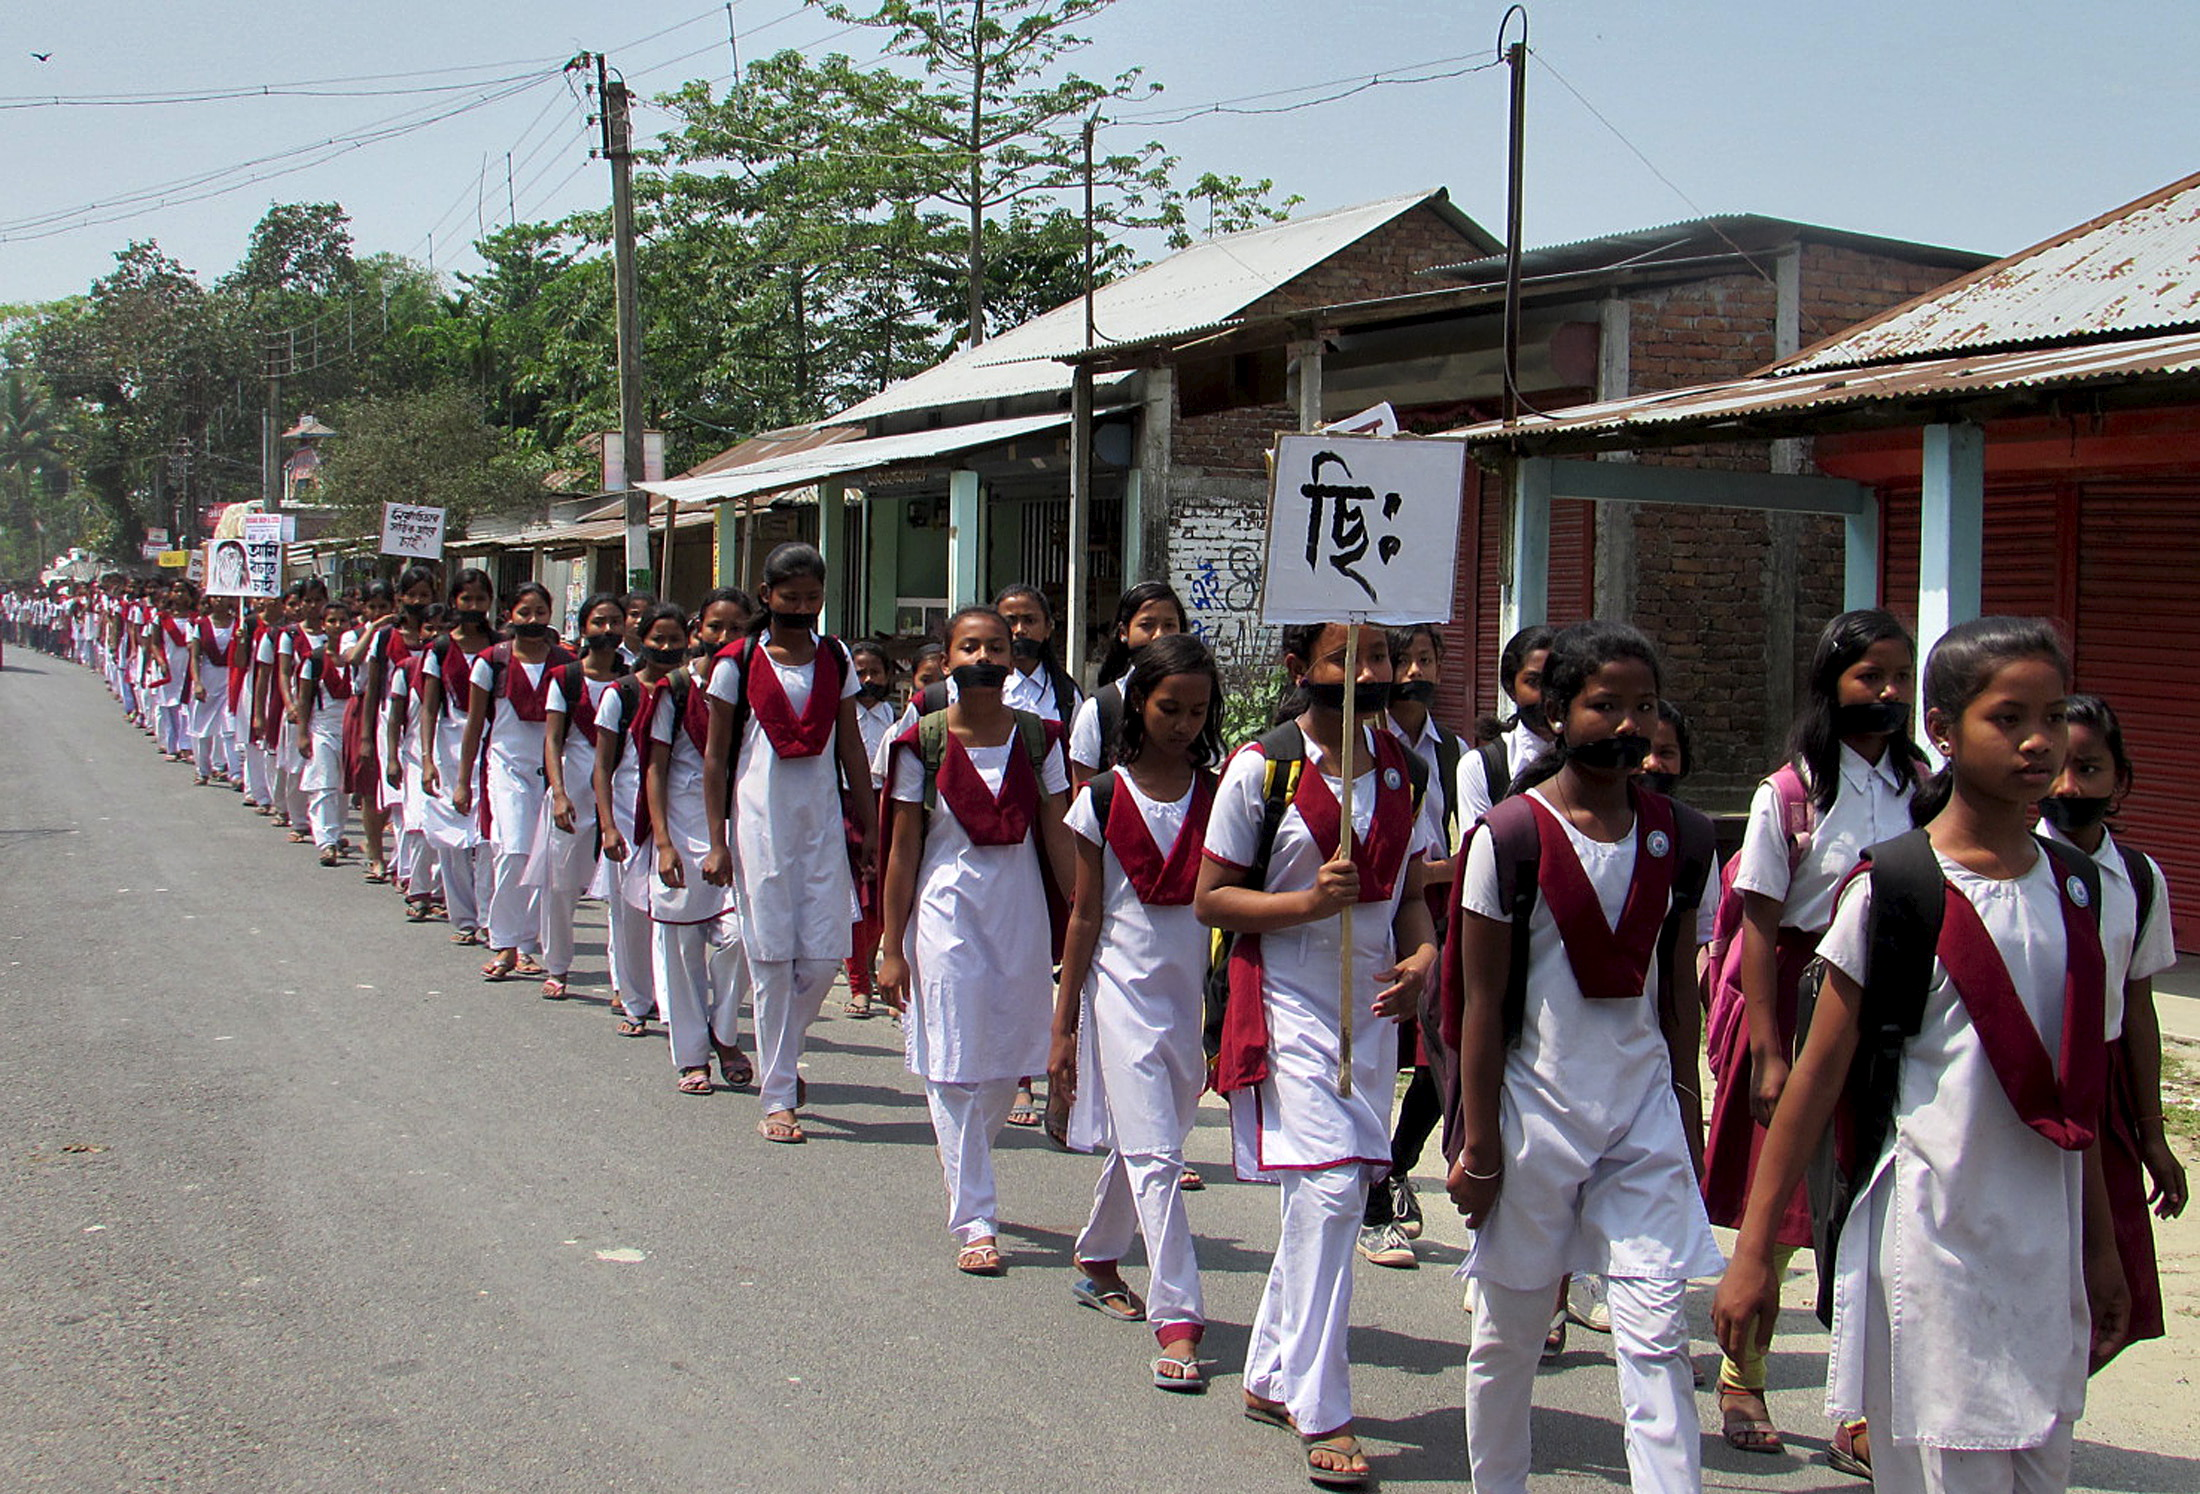 School girls wear black bands on their faces during a protest rally against the rape case of a 16-year-old girl at Dhupguri town in the eastern Indian state of West Bengal, April 11, 2015. The father, uncle and brother of the girl have been arrested accused of raping her repeatedly over a period of two years, police said on Saturday. REUTERS/Stringer - RTR4WWWA